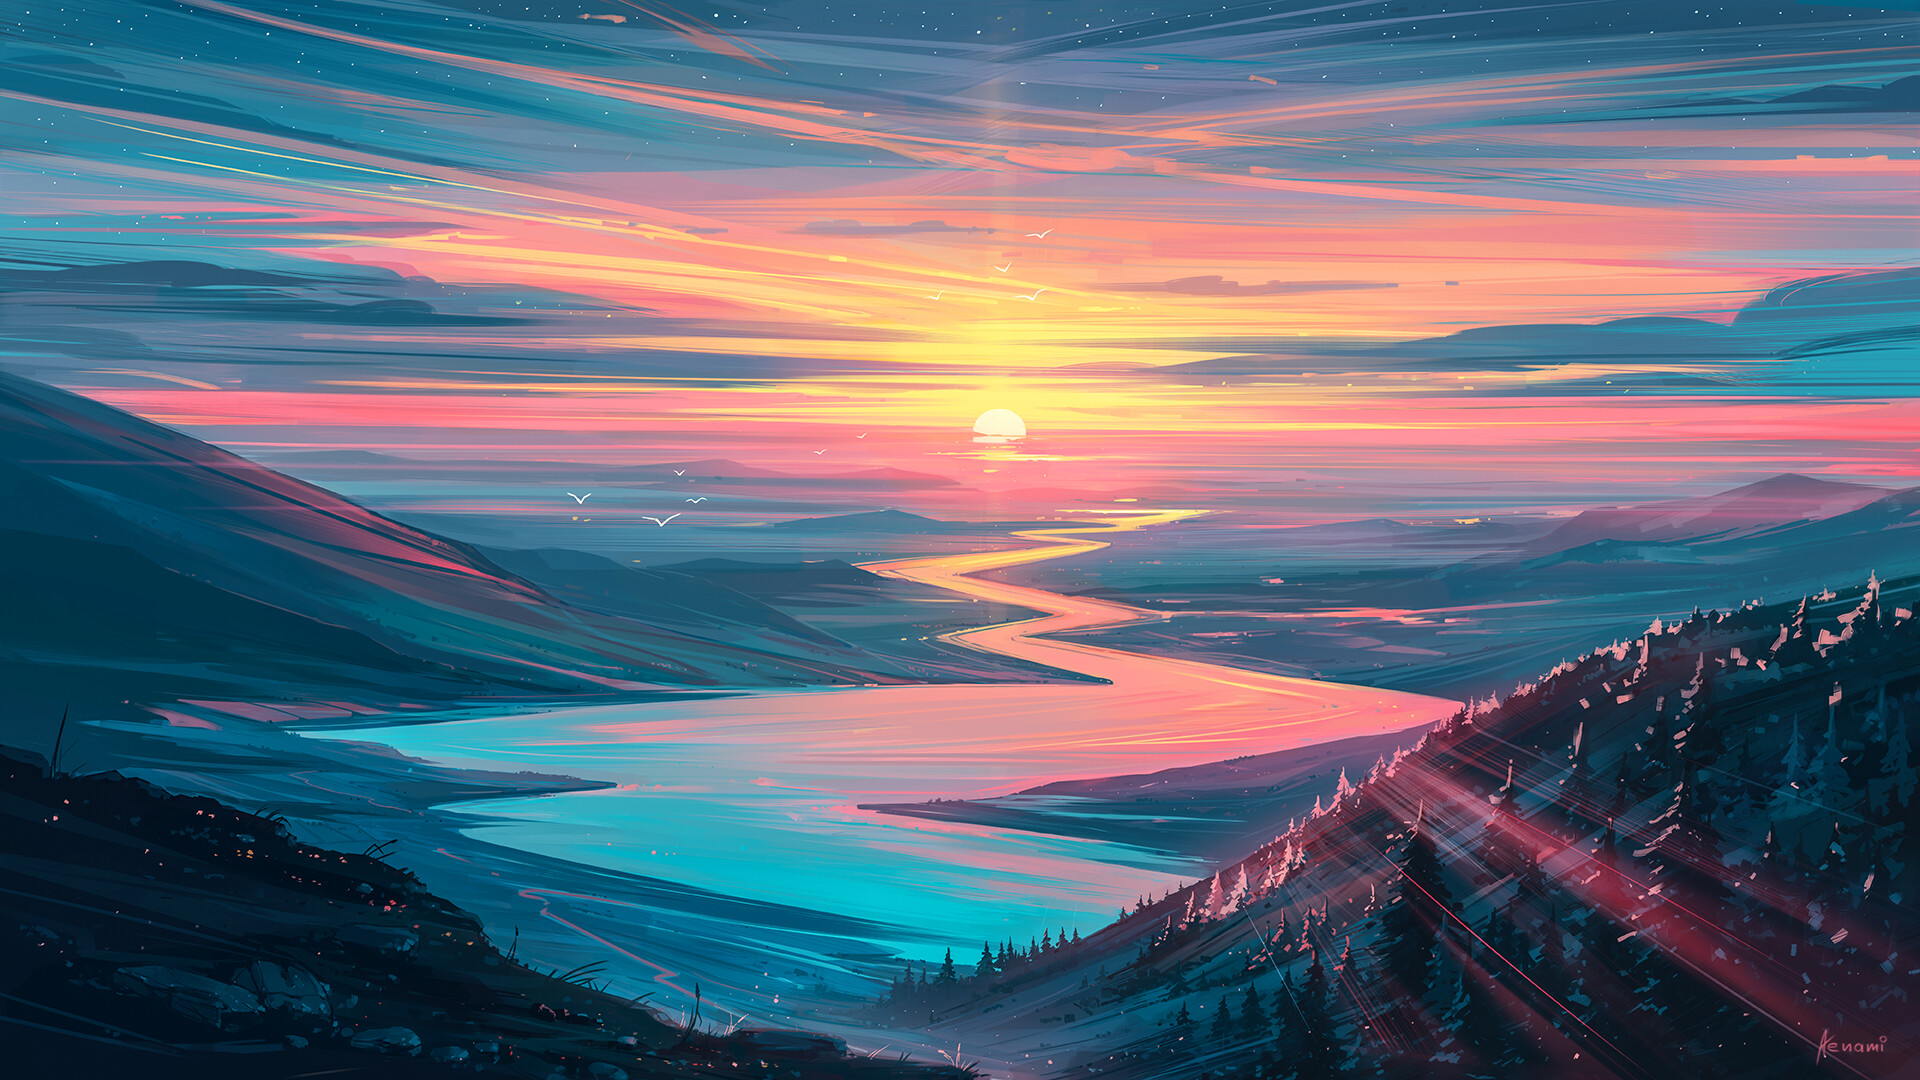 General 1920x1080 digital art artwork Aenami sunset mountains